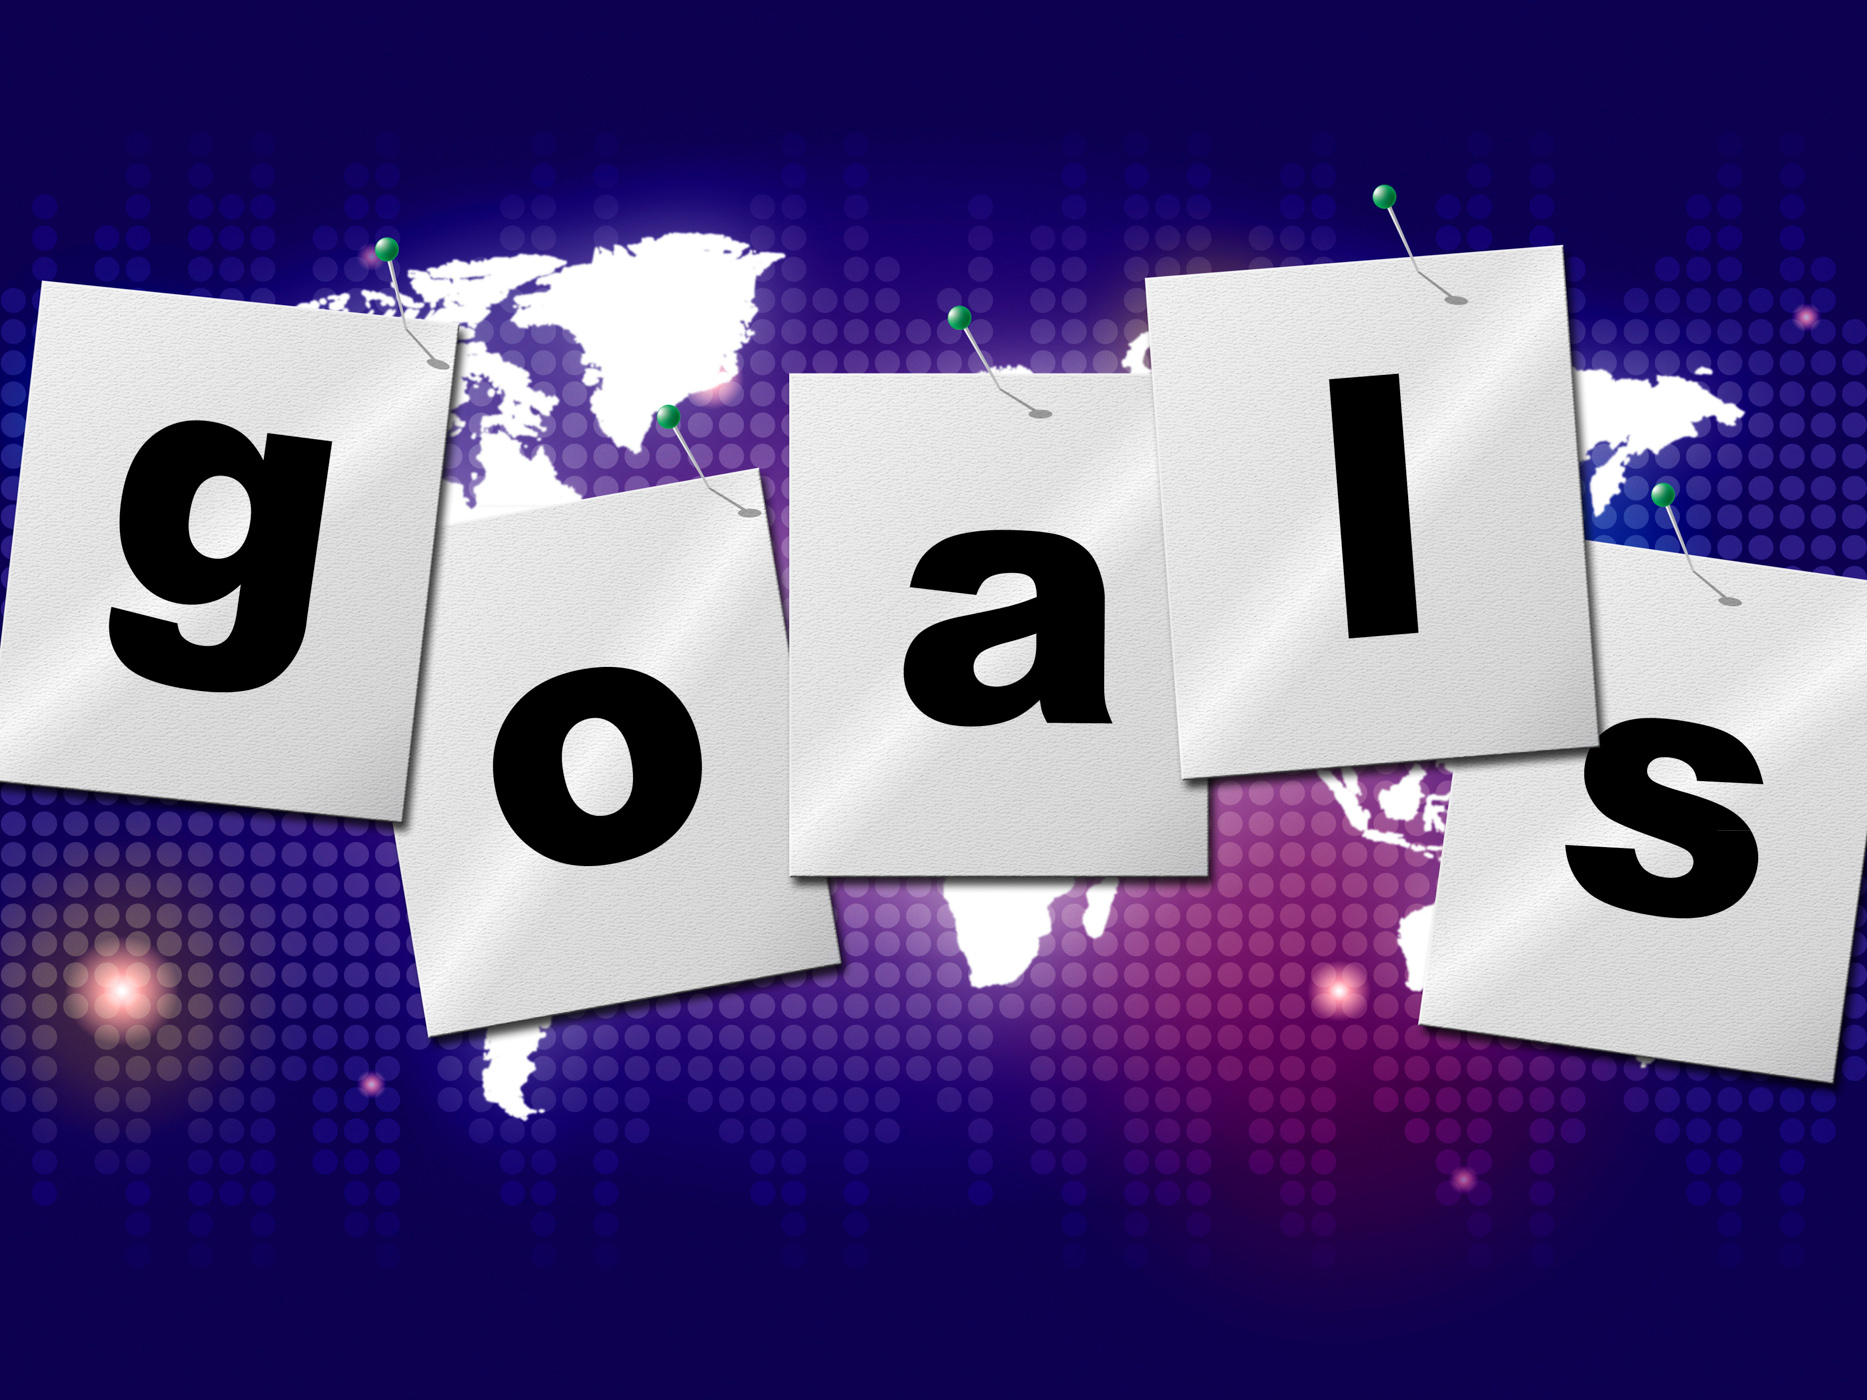 Goals Targets Indicates Aspirations Objectives And Forecast, Aim, Mission, Vision, Targets, HQ Photo